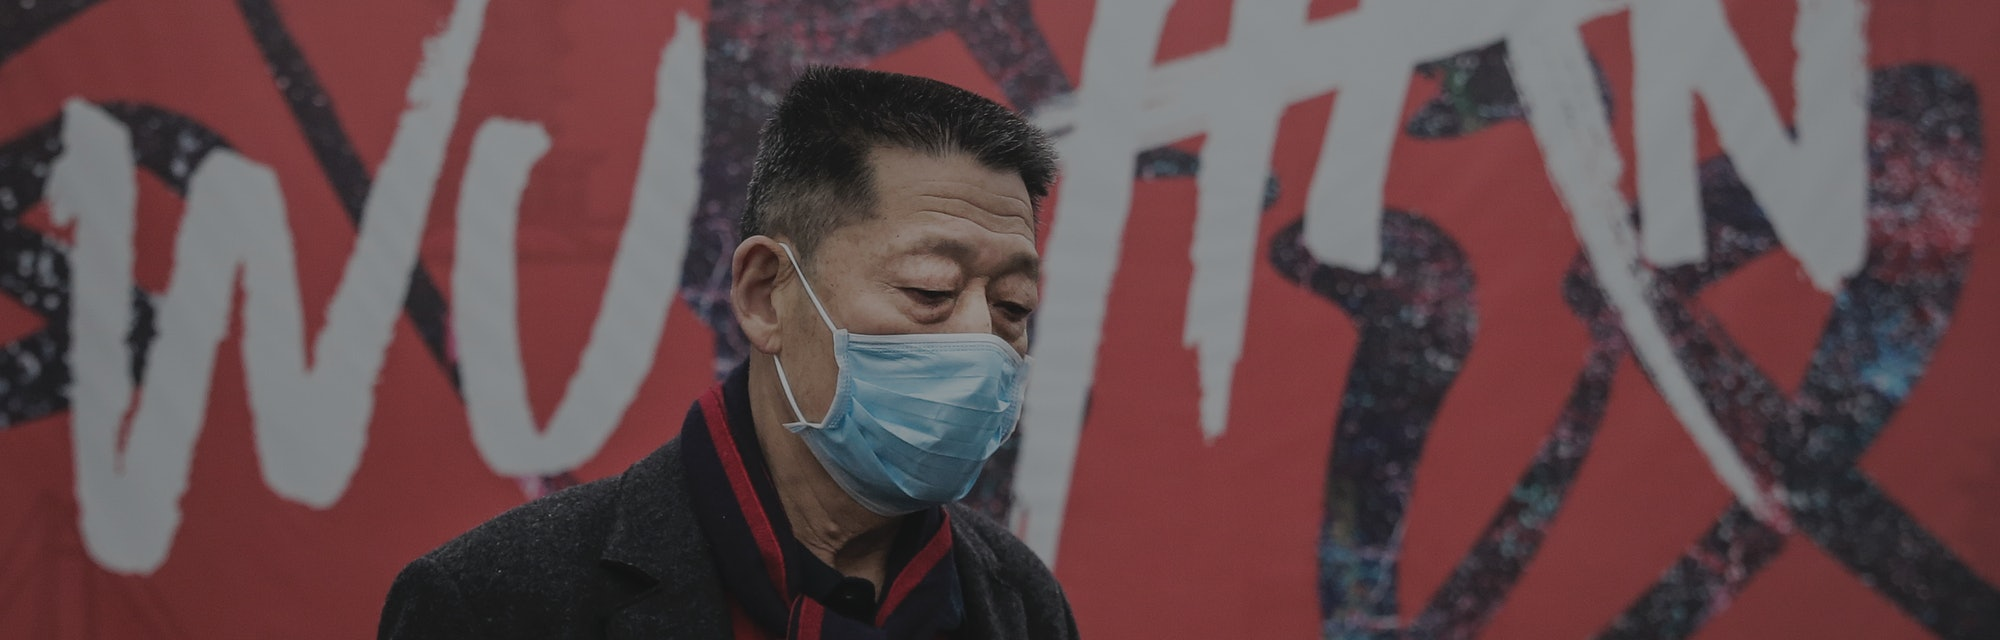 "WUHAN, CHINA - JANUARY 22: (CHINA OUT) A man wears a mask while walking in the street on January 22, 2020 in Wuhan, Hubei province, China. A new infectious coronavirus known as ""2019-nCoV"" was discovered in Wuhan as the number of cases rose to over 400 in mainland China. Health officials stepped up efforts to contain the spread of the pneumonia-like disease which medicals experts confirmed can be passed from human to human. The death toll has reached 17 people as the Wuhan government issued regulations today that residents must wear masks in public places. Cases have been reported in other countries including the United States, Thailand, Japan, Taiwan, and South Korea. (Photo by Getty Images)"